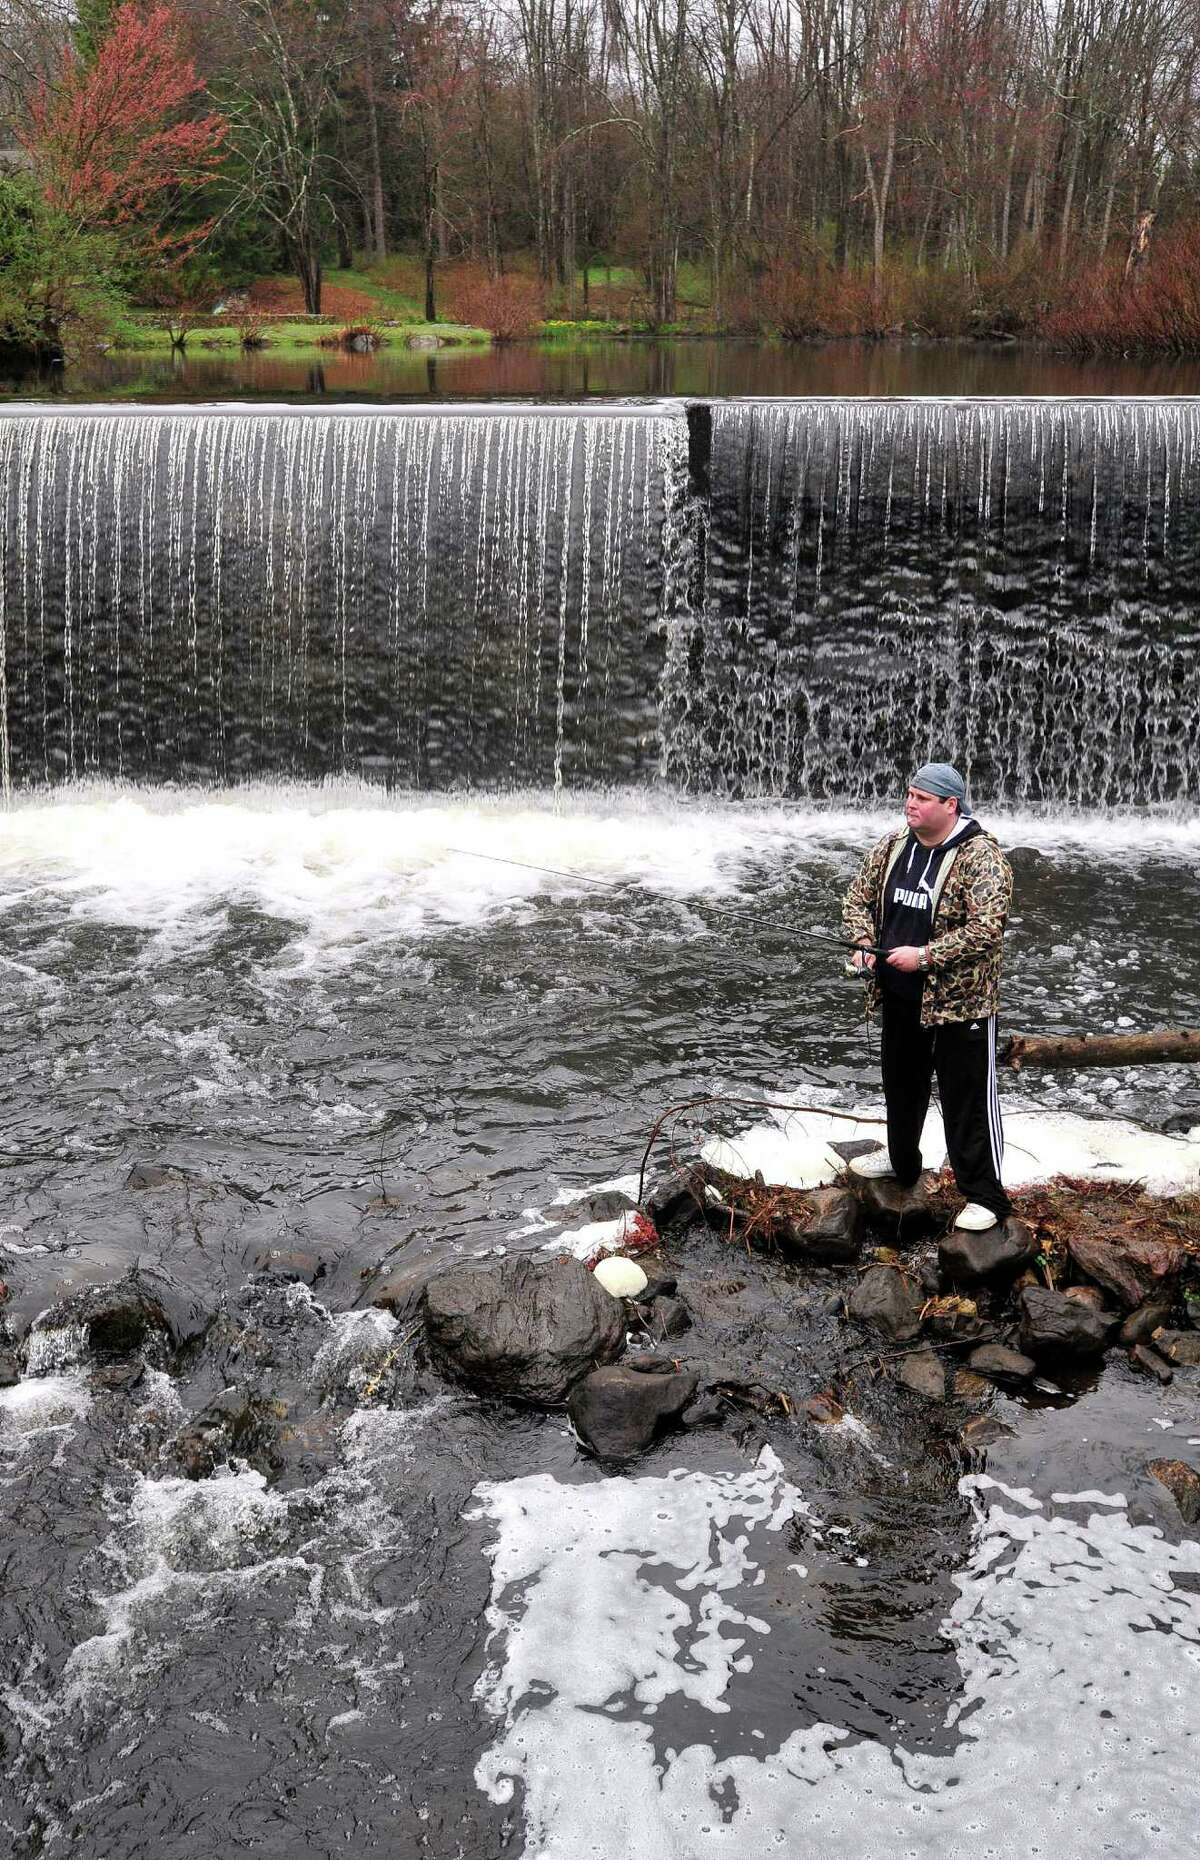 Paul Tilinek, of New Milford, fishes on the opening day of fishing season along the Saugatuck River in Redding, Conn. Saturday, April 20, 2013.